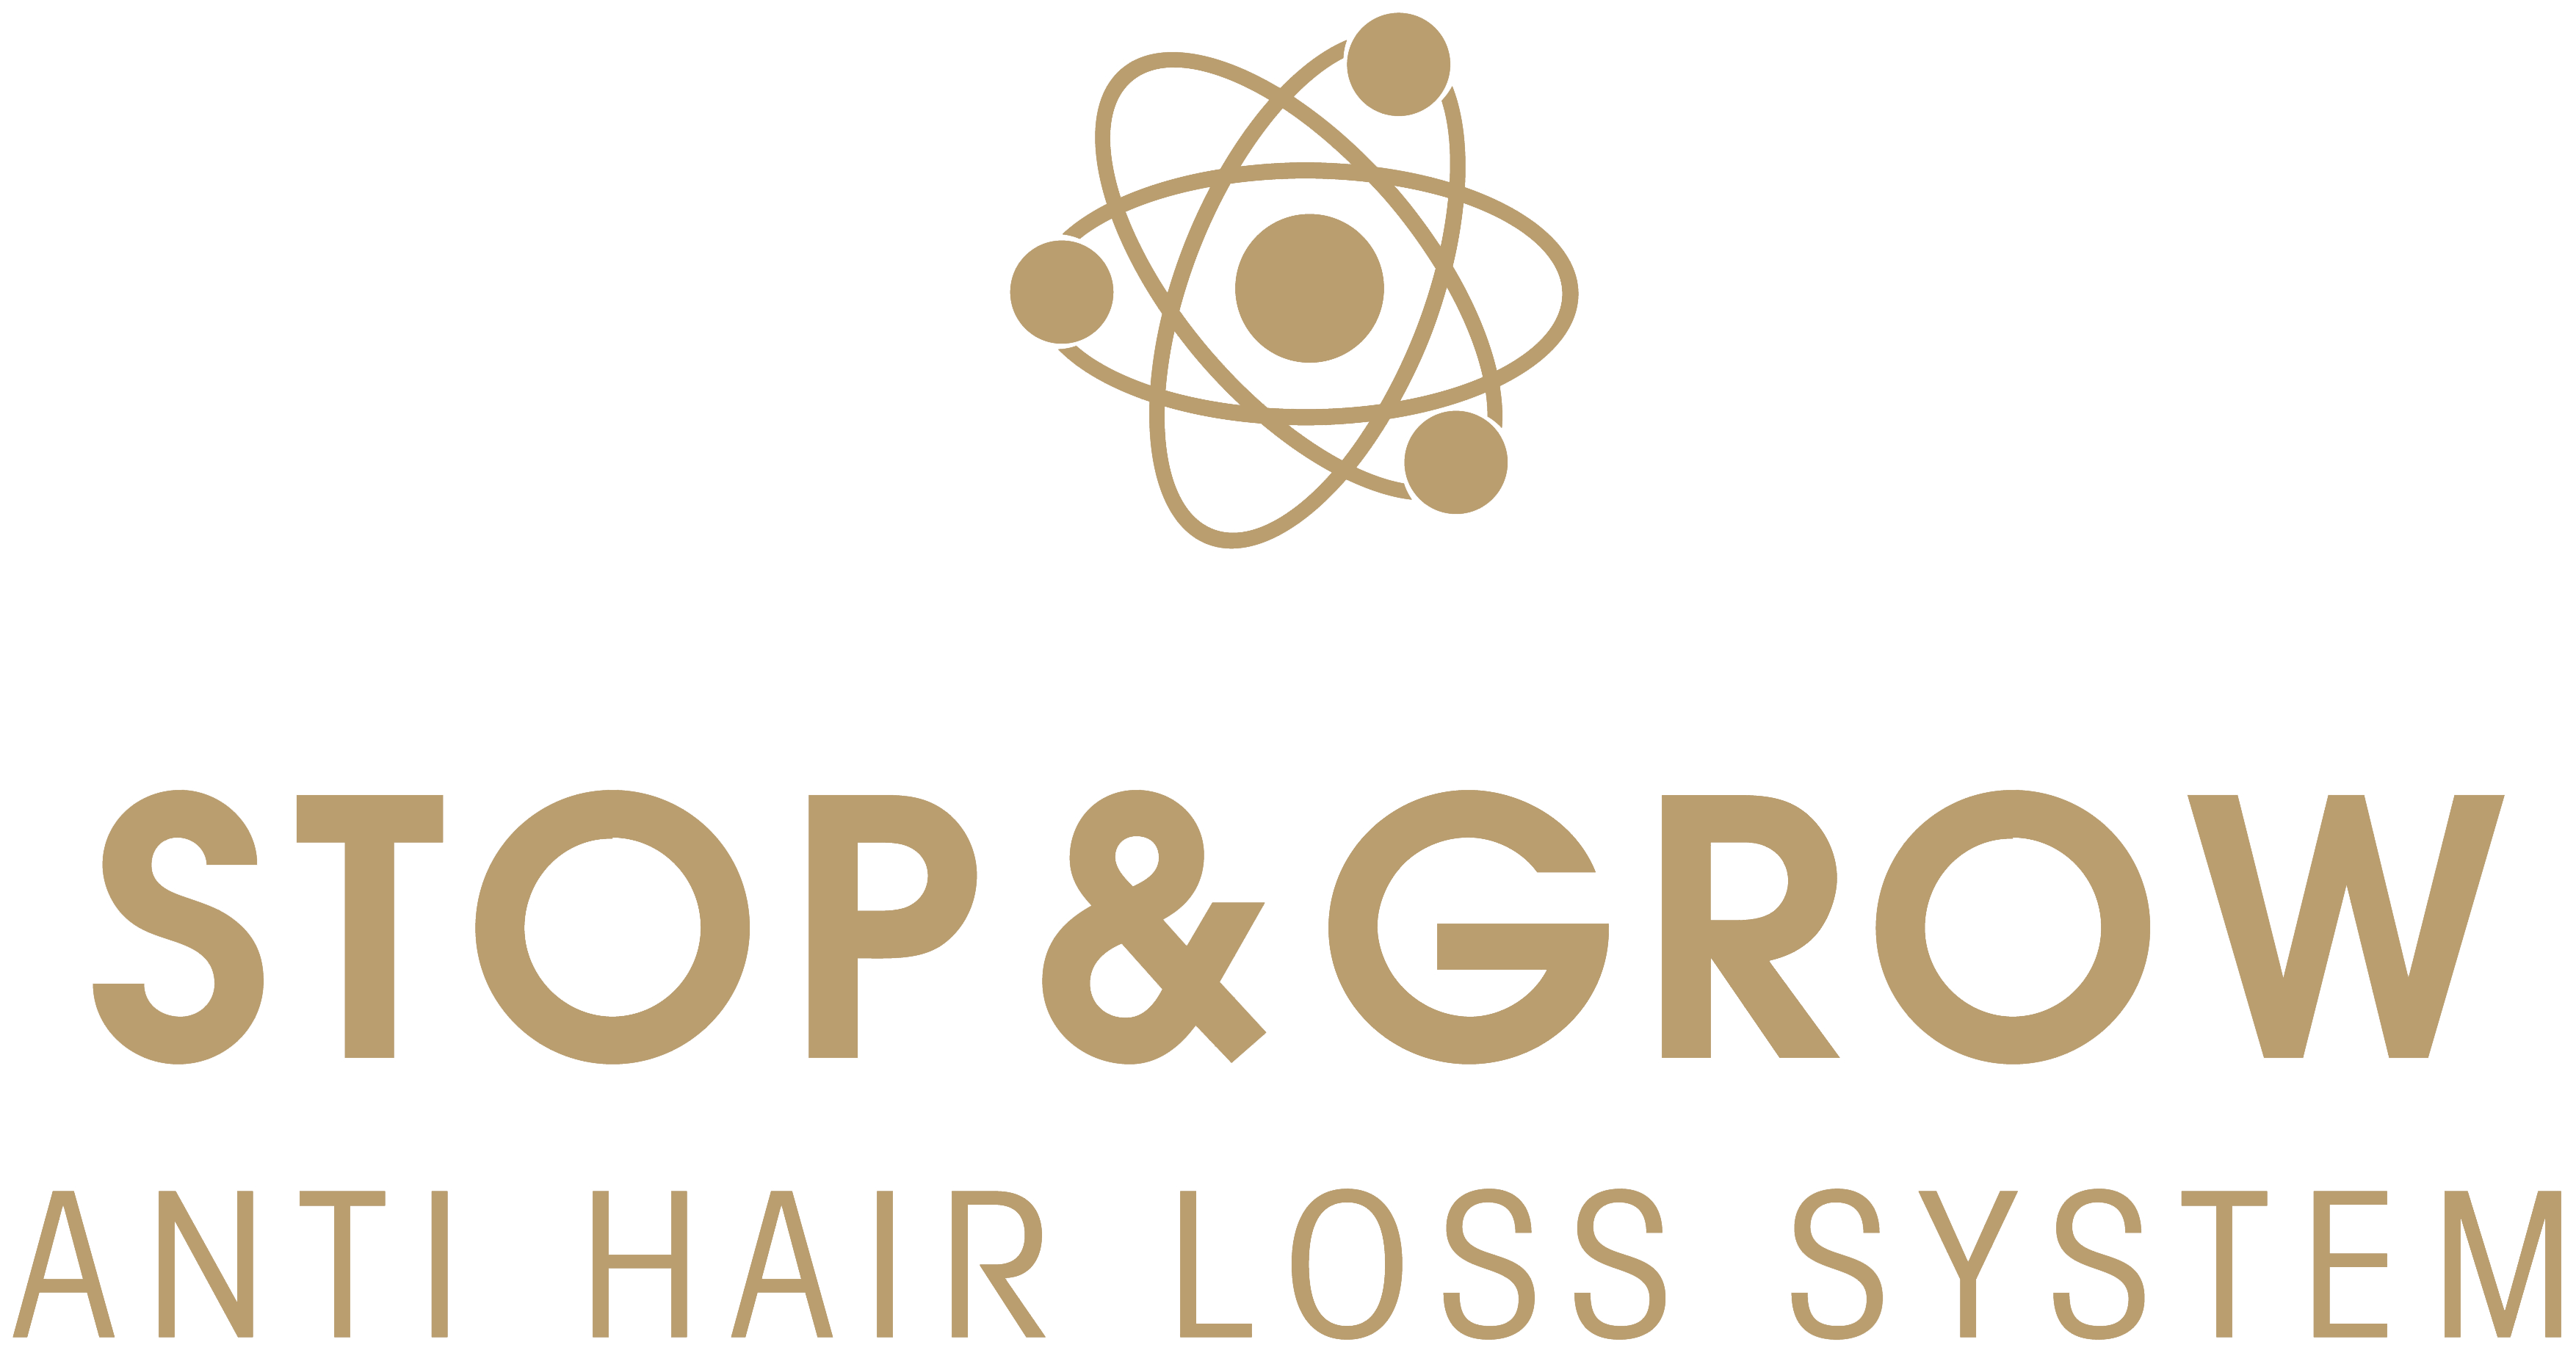 Hairdreams StopandGrow_Anti-Hair-Loss-System